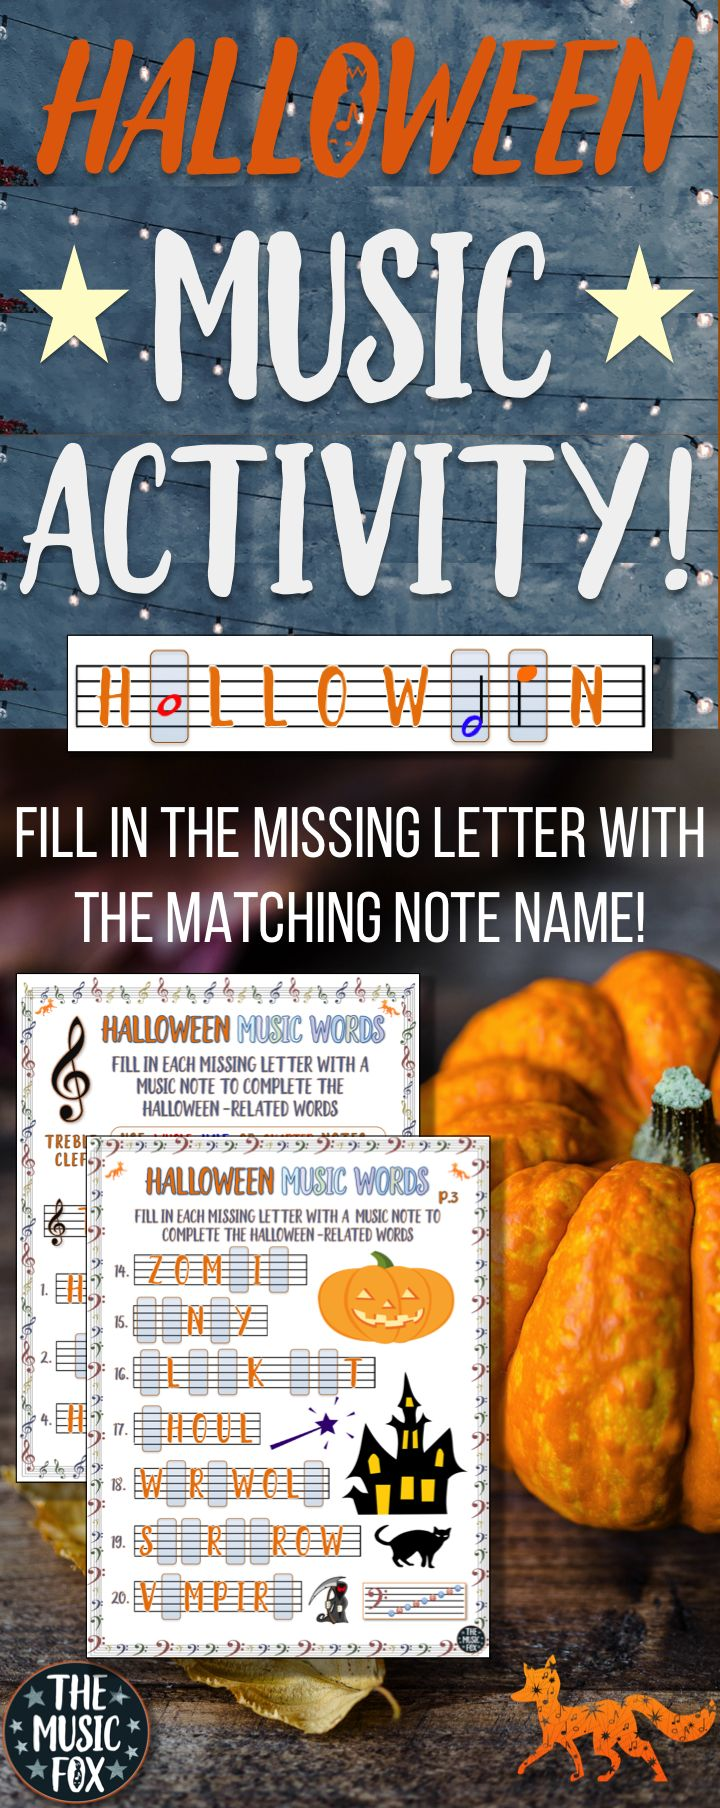 This Halloween Music #Worksheet is a fun way for students to learn the note names on the music staff by drawing in the missing letters of the musical alphabet (A-G) for 20 Halloween-related words. For example, the letters C, A, and E, are missing in the word �carve� (_ _ r v _) and students must draw in the corresponding music note name of the missing letters. #Halloween #Music #TheMusicFox #Band #Choir #TeachersPayTeachers #TpT #education #TeachingMusic  #MusicClassroom #MusicEducation